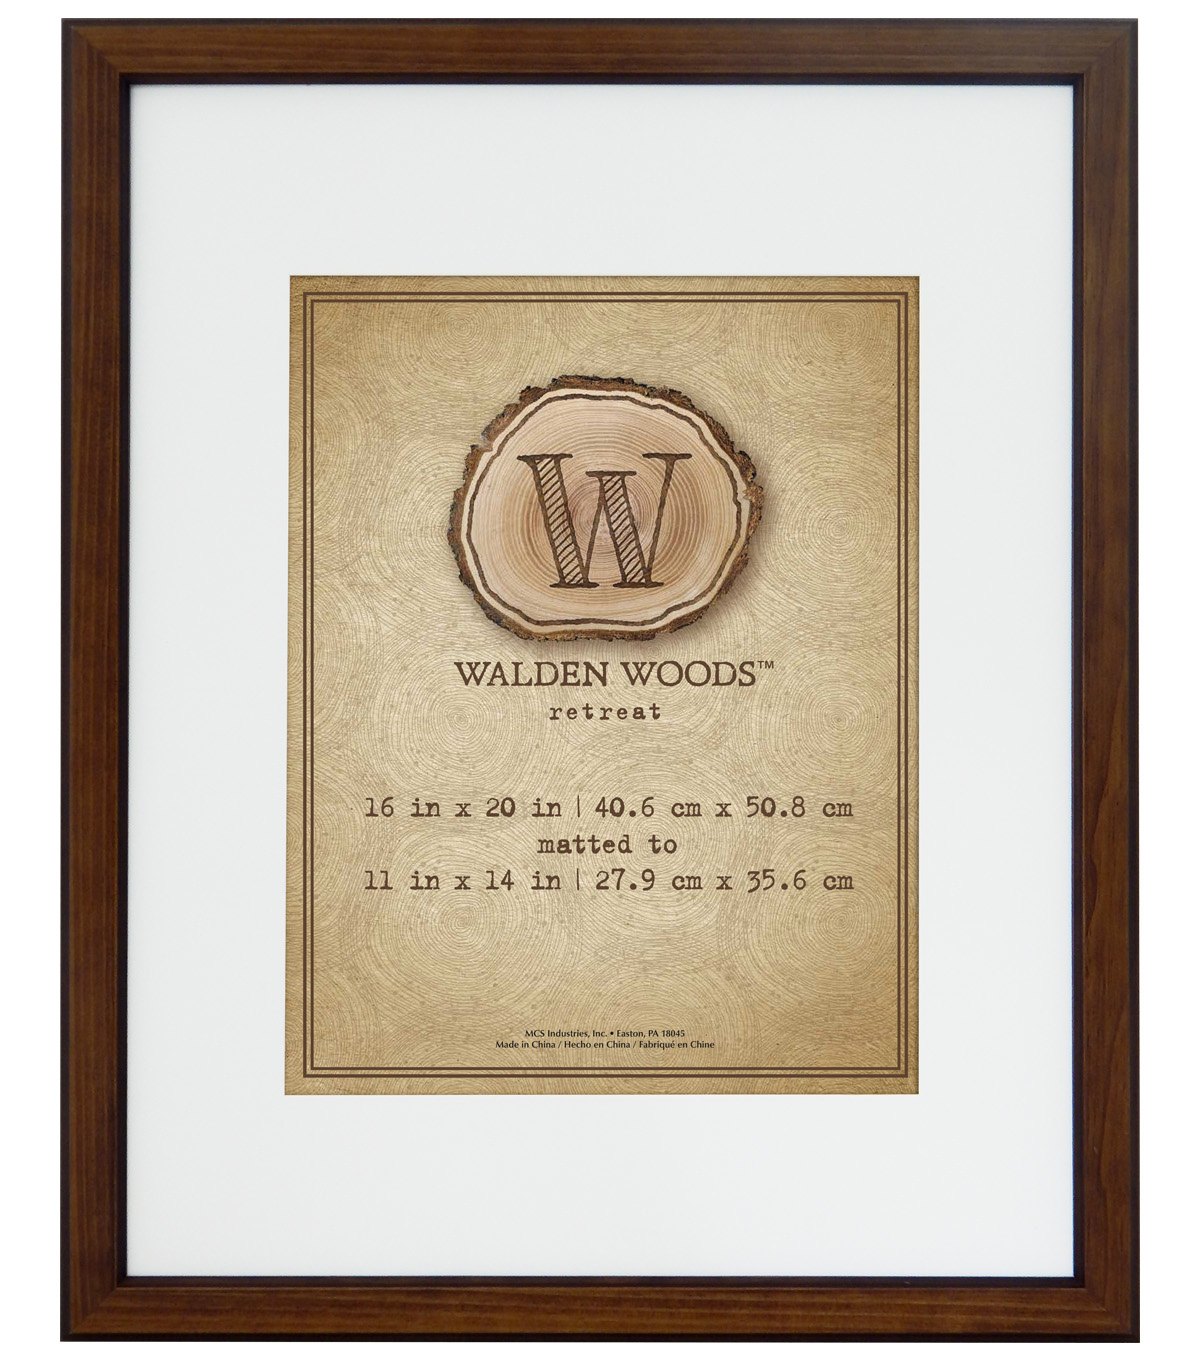 Walden Woods Wall Frame 16X20 To 11X14-Warm Walnut